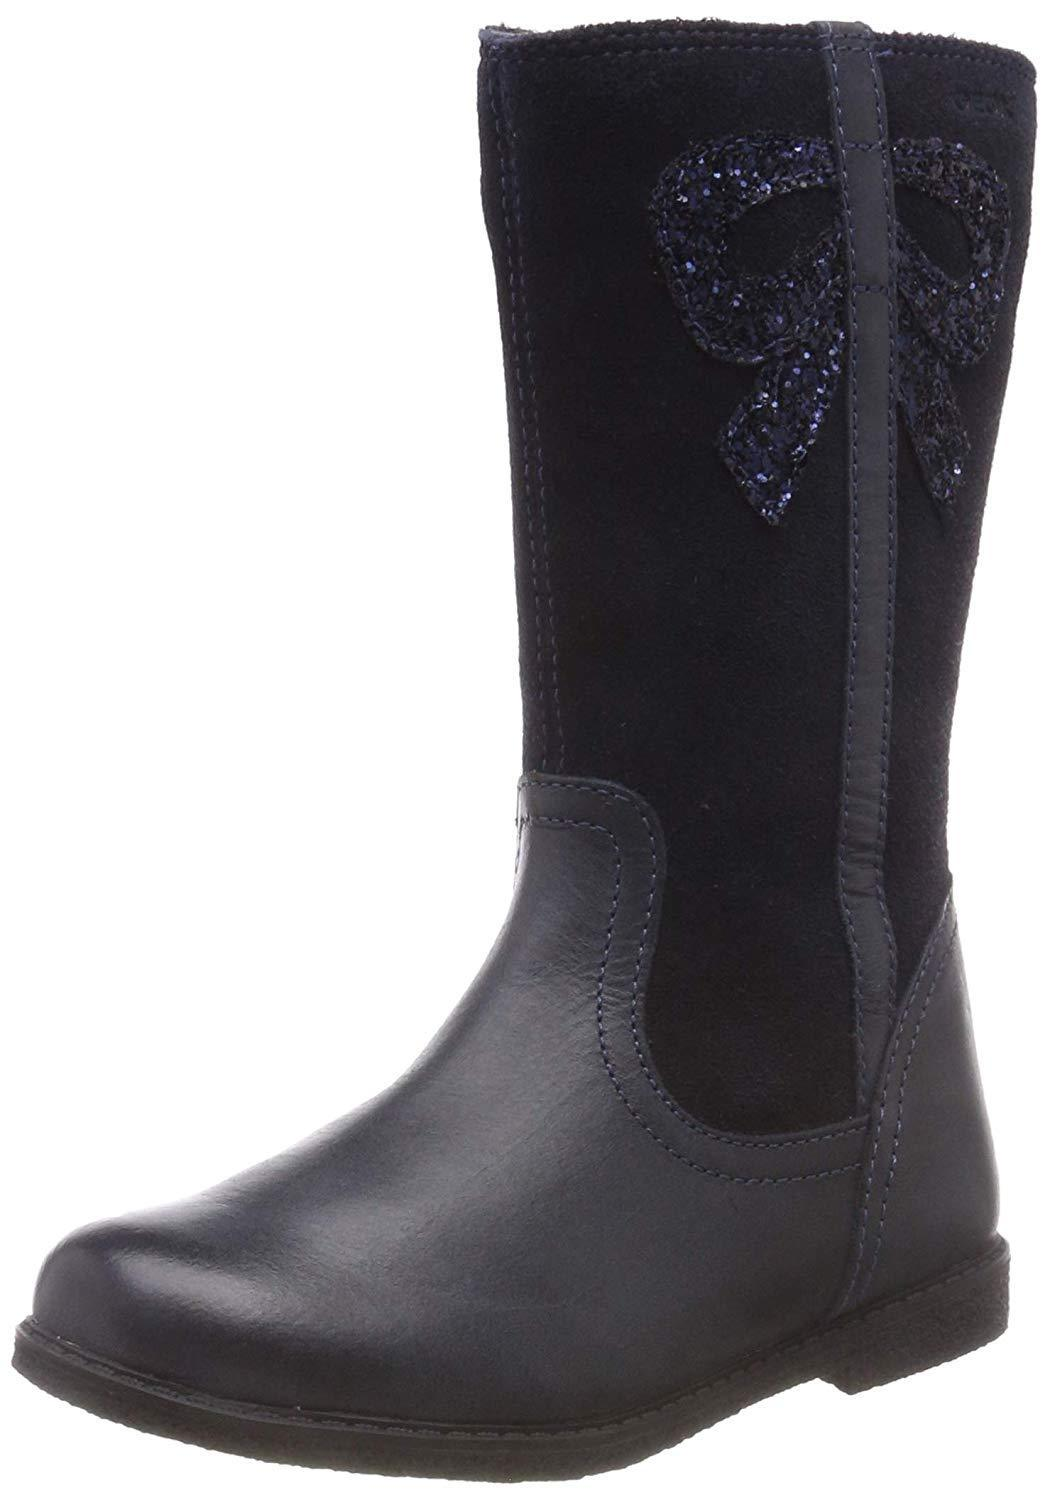 Geox Shawntel Girls Navy Boots